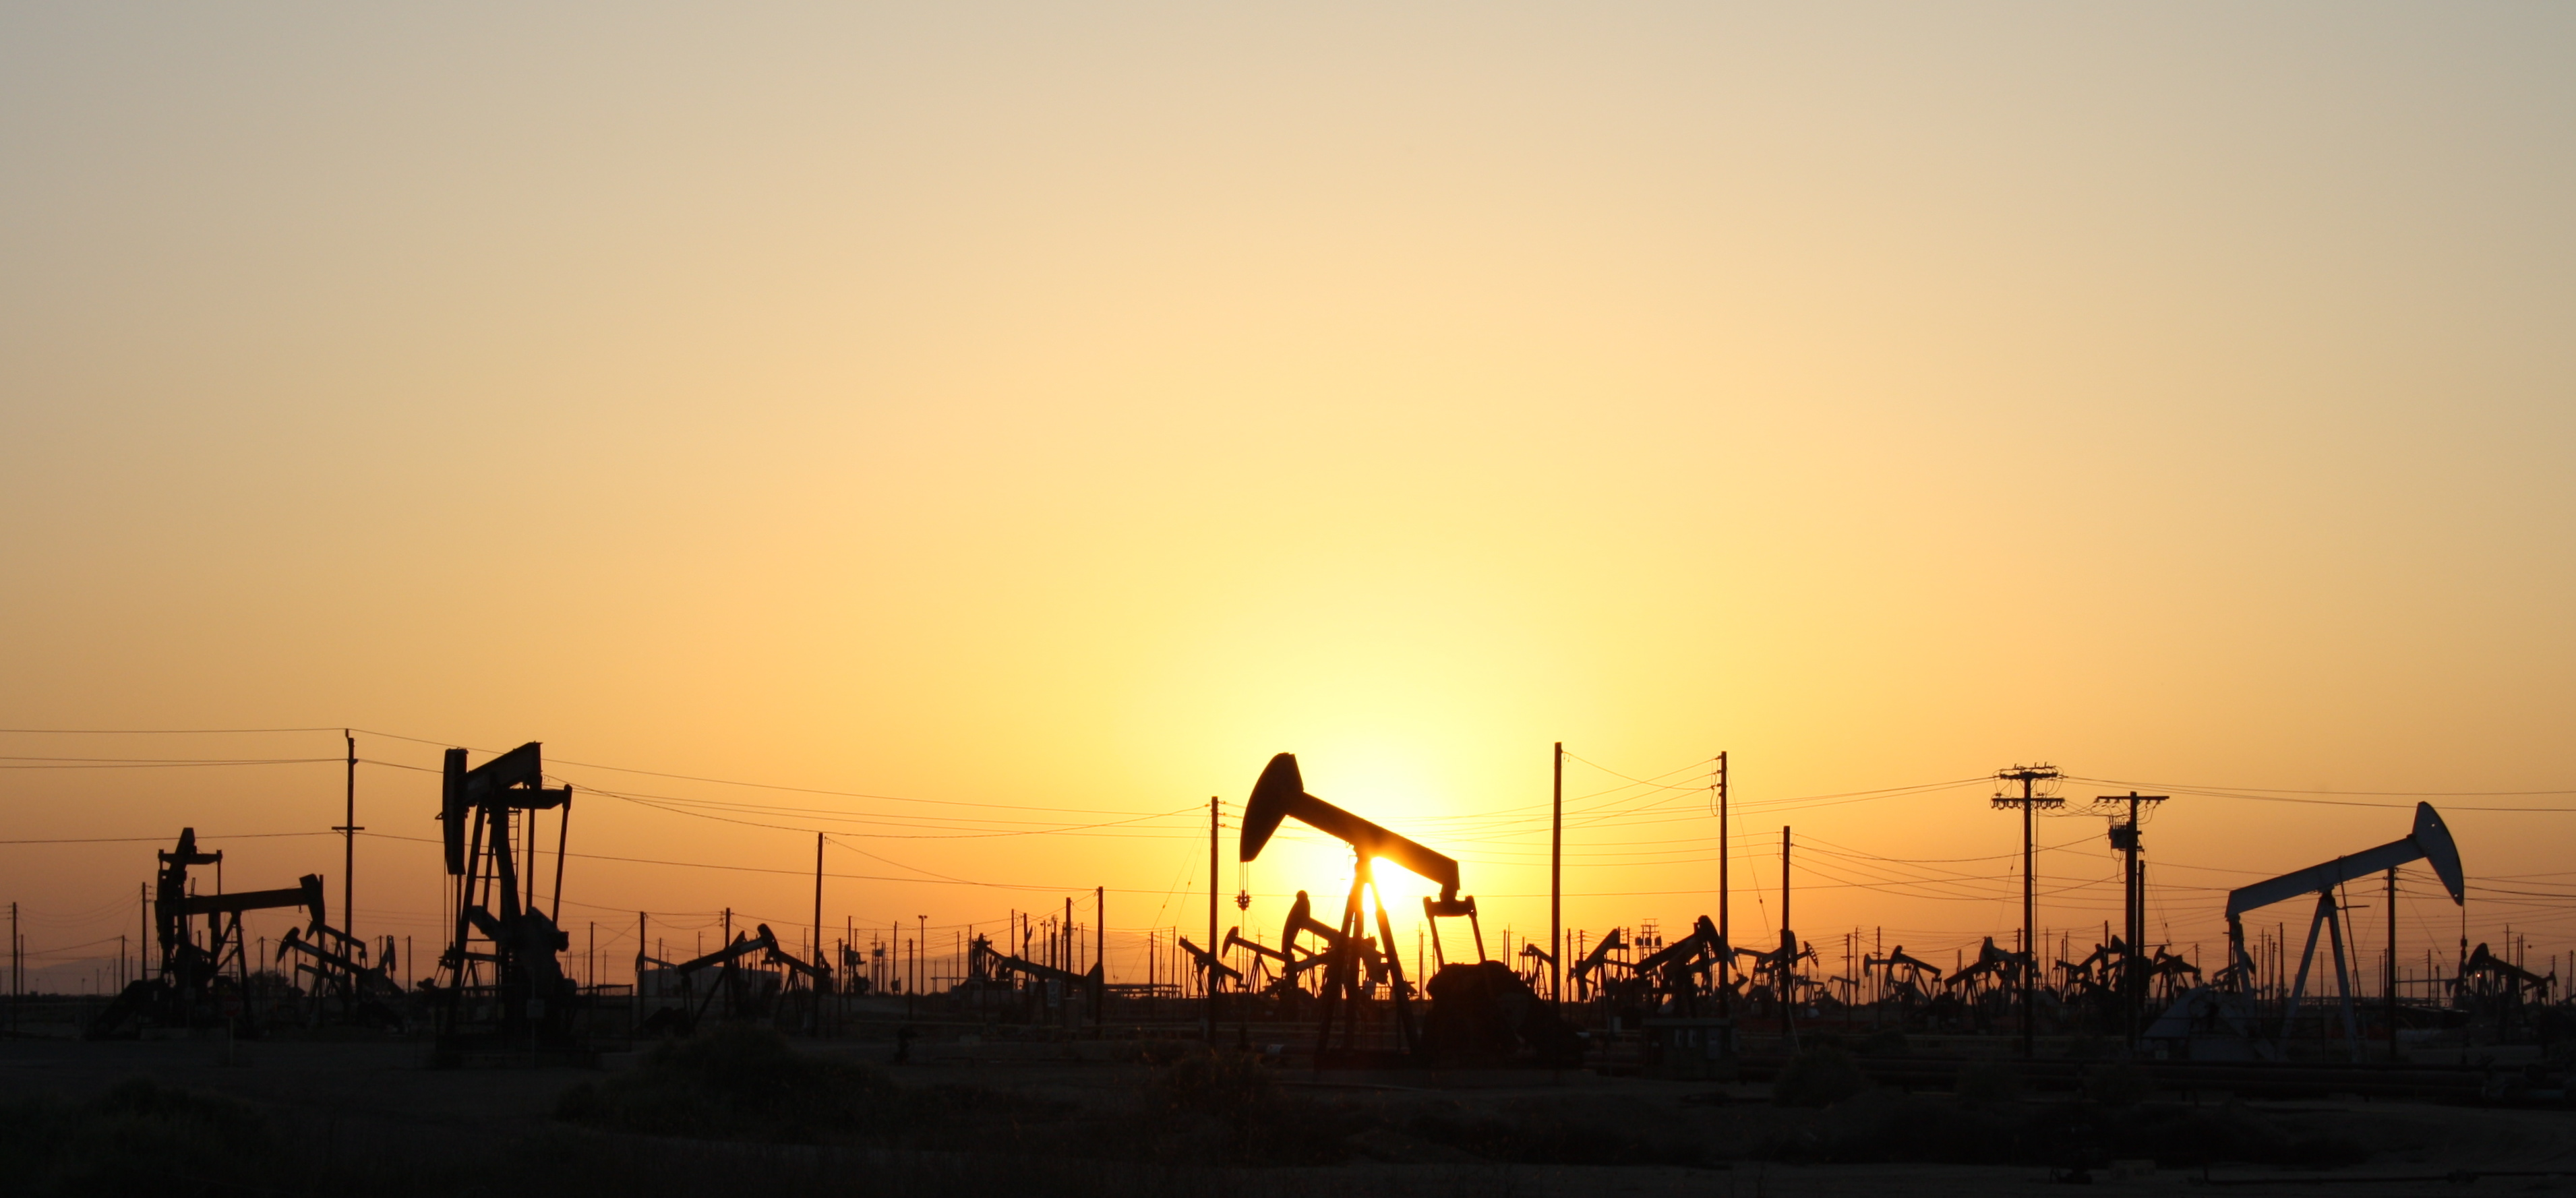 A field of pumpjacks in an oil field, a common source of methane, backlit by a sunset.